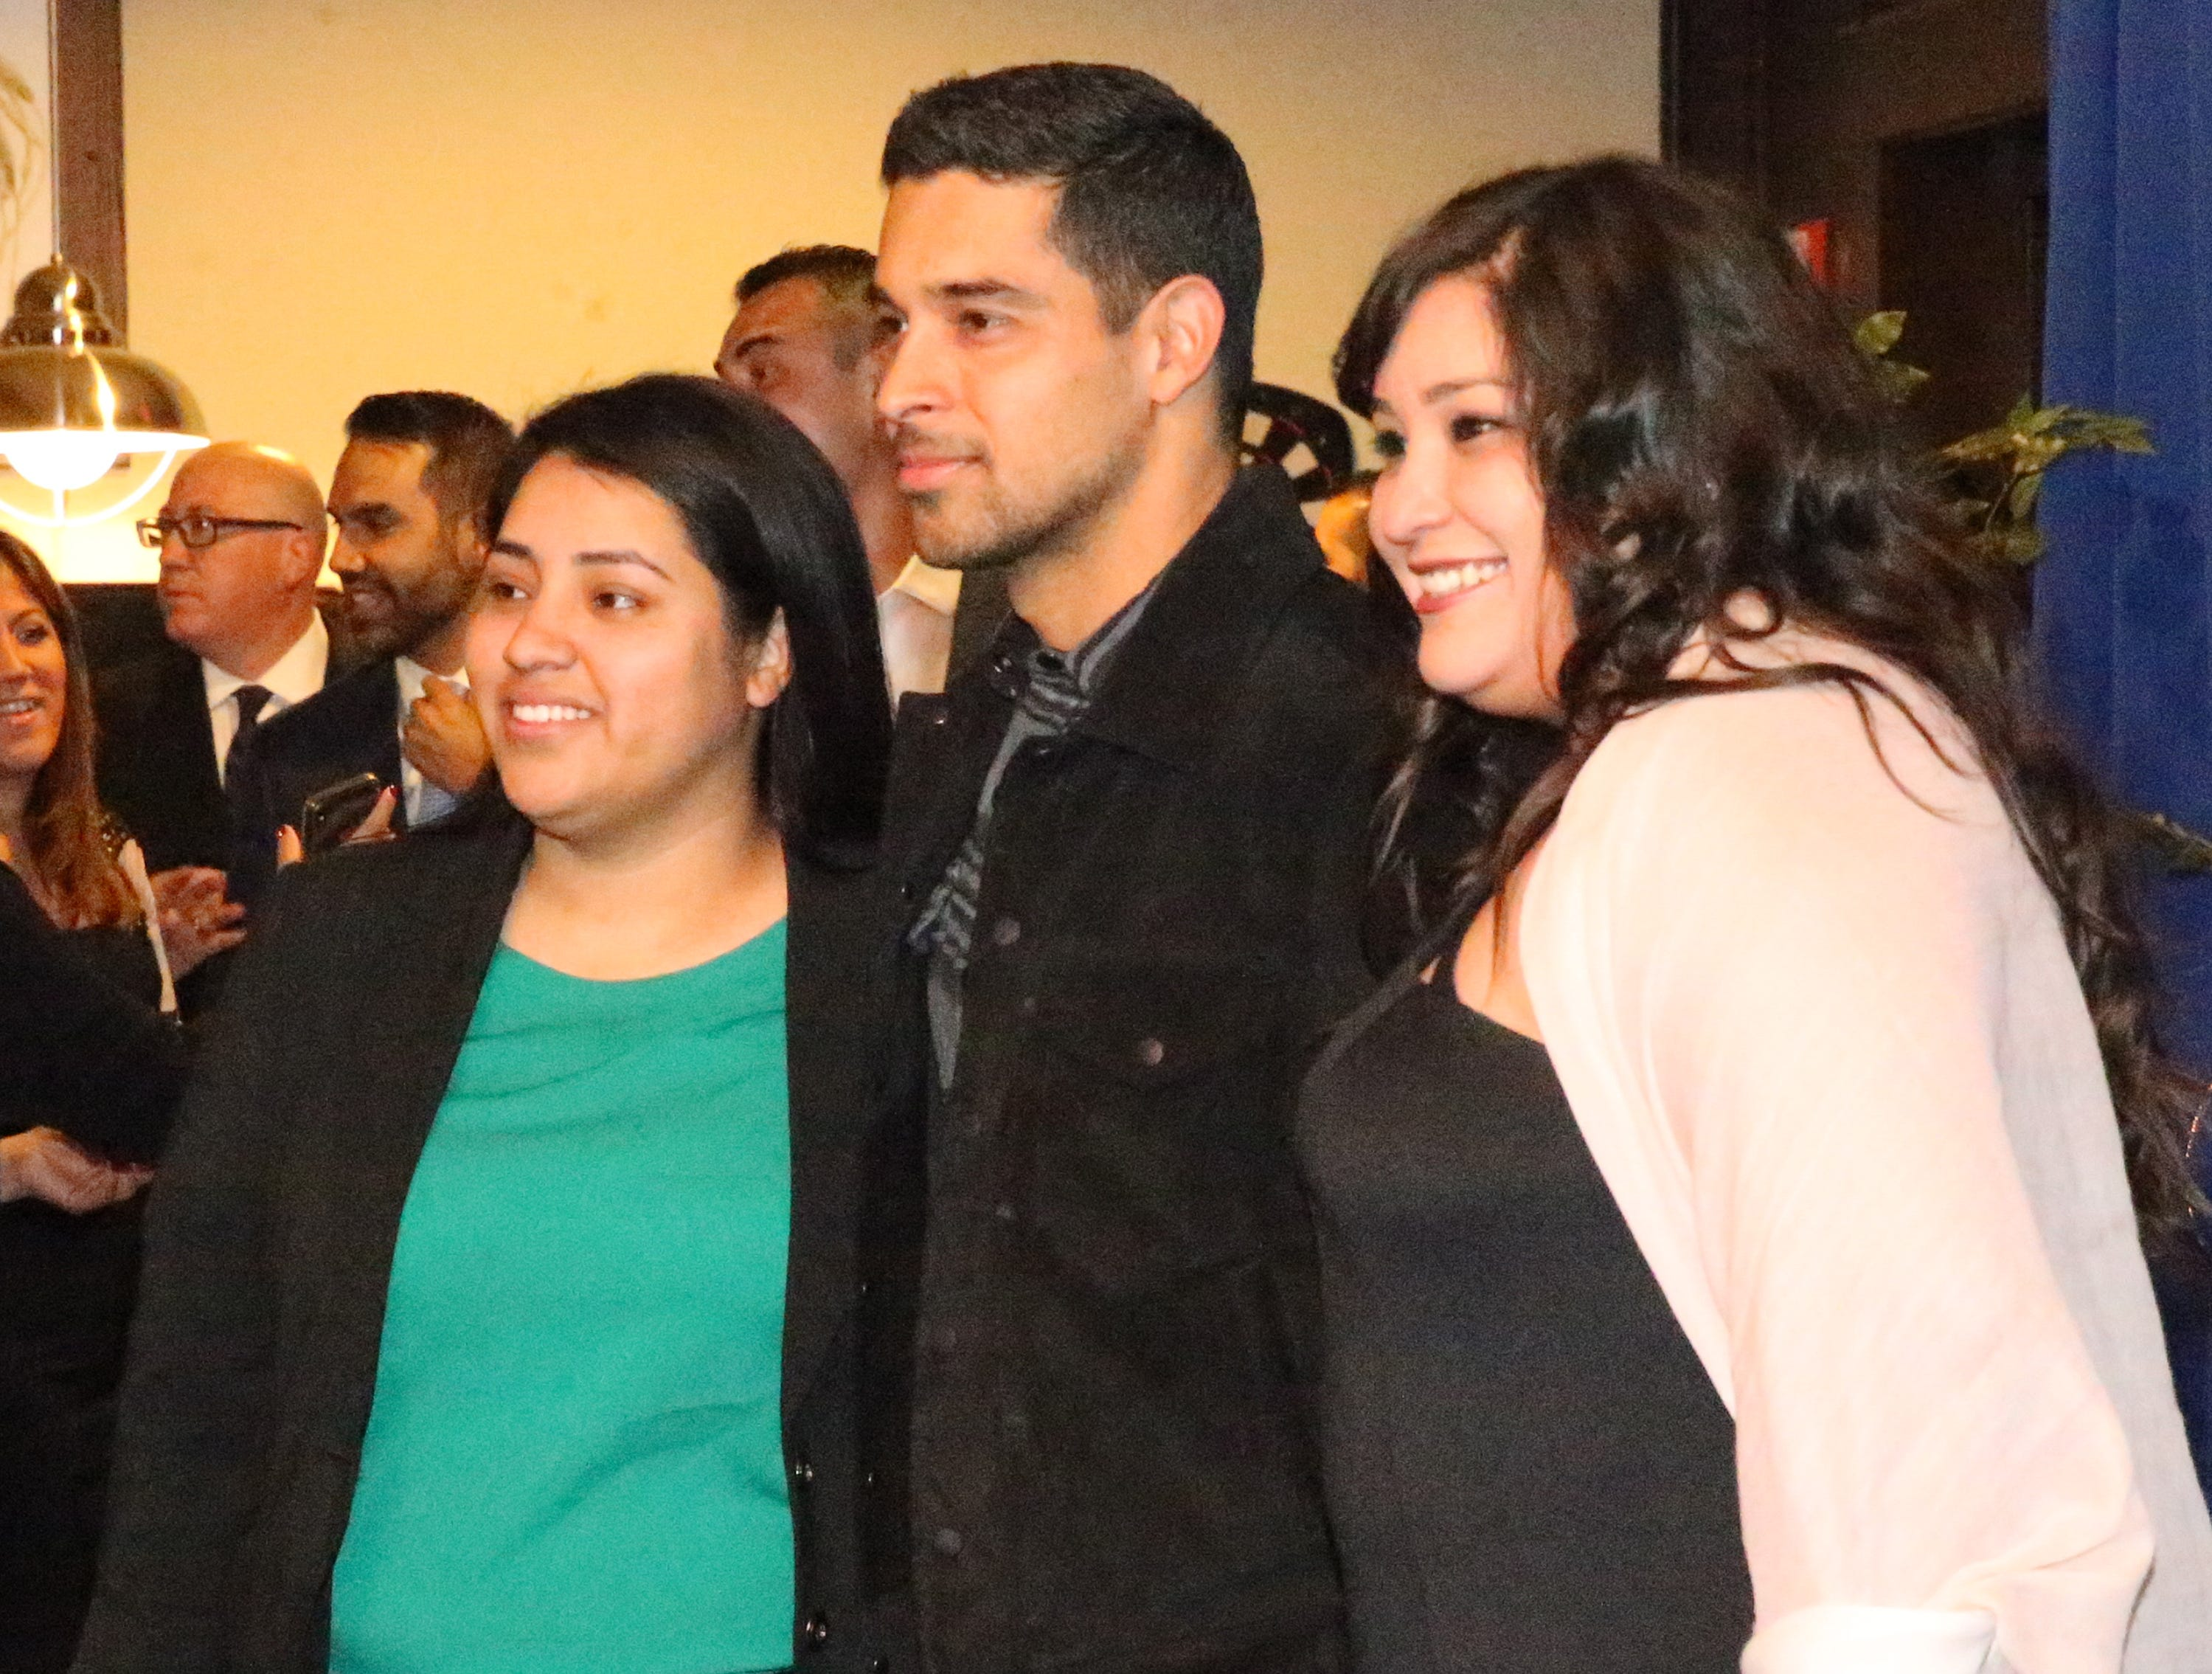 Actor/producer Wilmer Valderrama, center, poses for a picture with Briana Martinez, left, and Jenna Aguilar during a reception at the 28th El Paso Hispanic Chamber of Commerce annual Fiesta Celebration Saturday night at the Centennial Banquet and Conference Center at Fort Bliss.